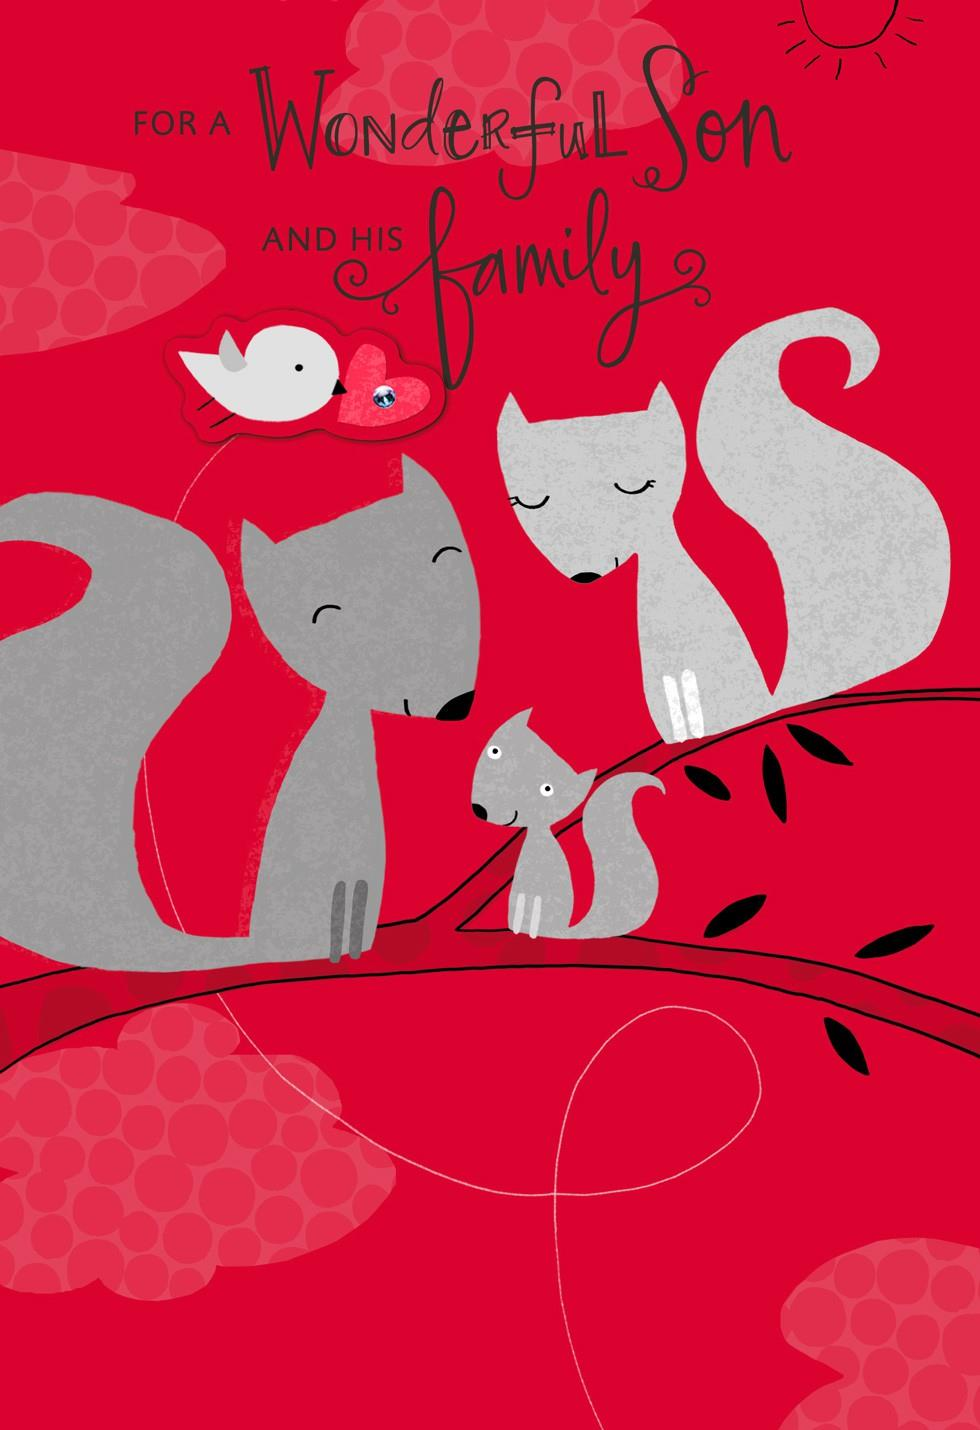 loving squirrels for son and his family valentine's day card, Ideas